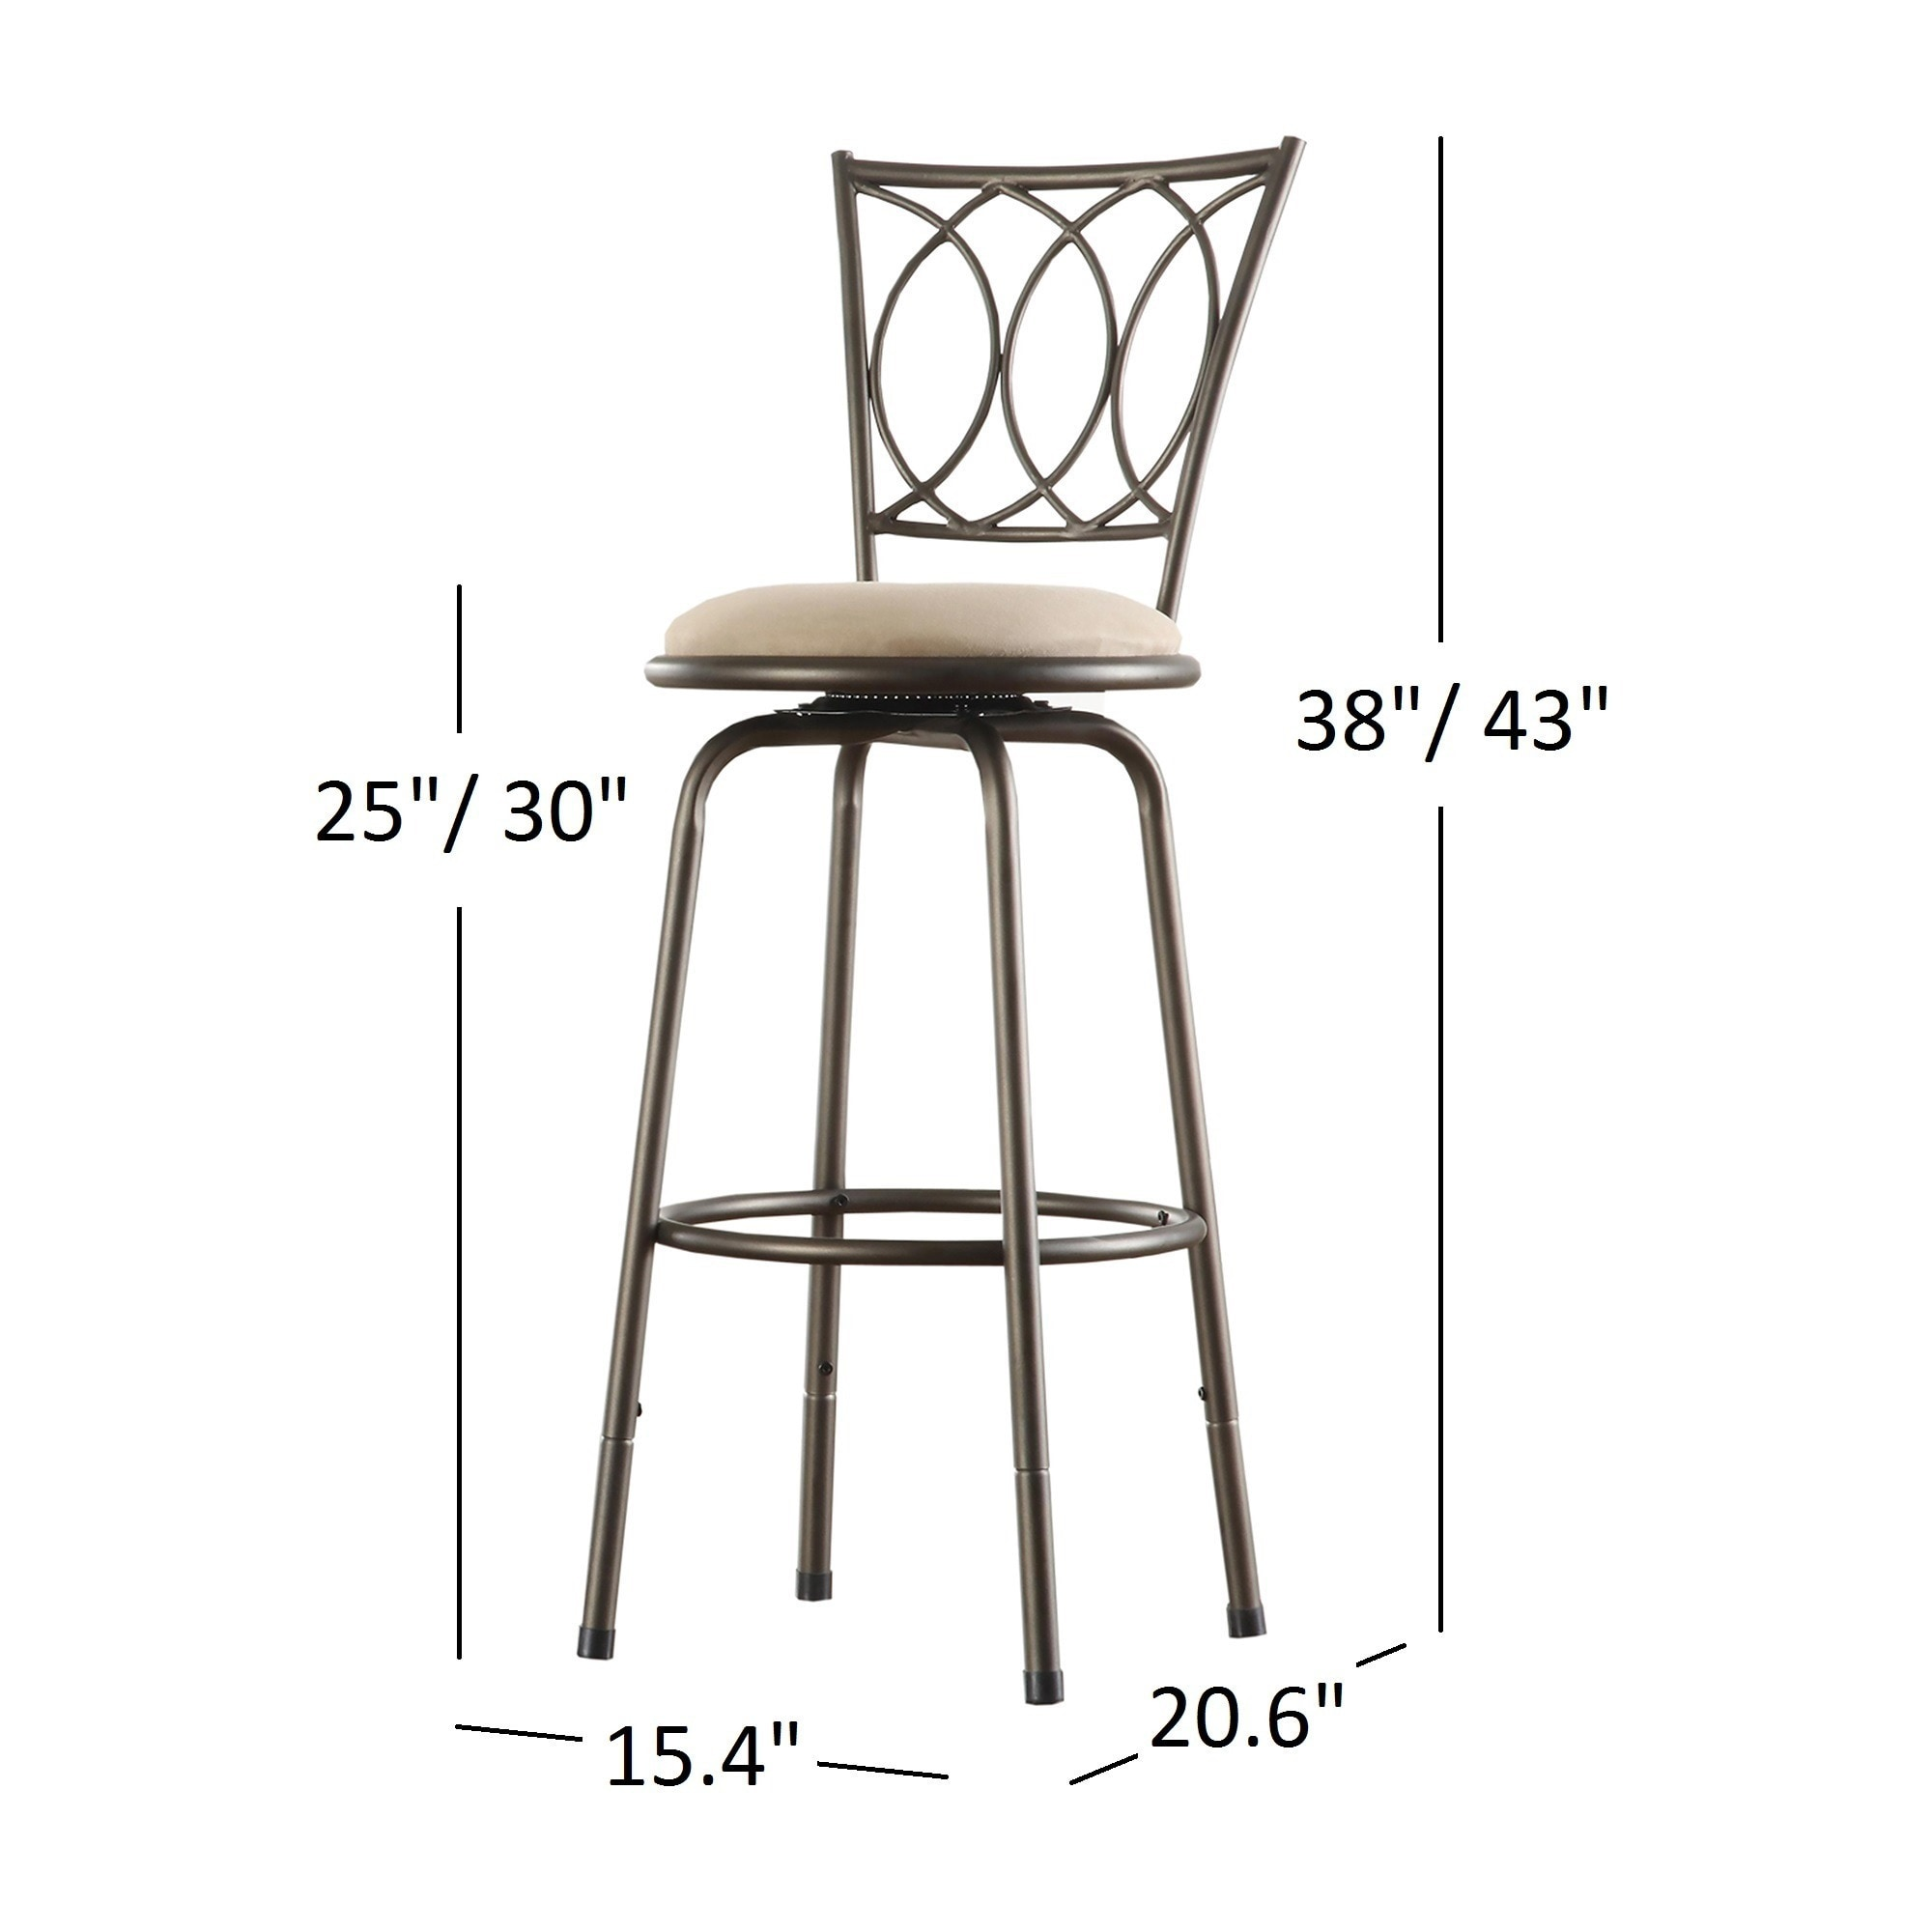 Avalon Scroll Adjustable Swivel High Back Counter Barstool (Set Of 3) By  INSPIRE Q Classic   Free Shipping Today   Overstock.com   12280141